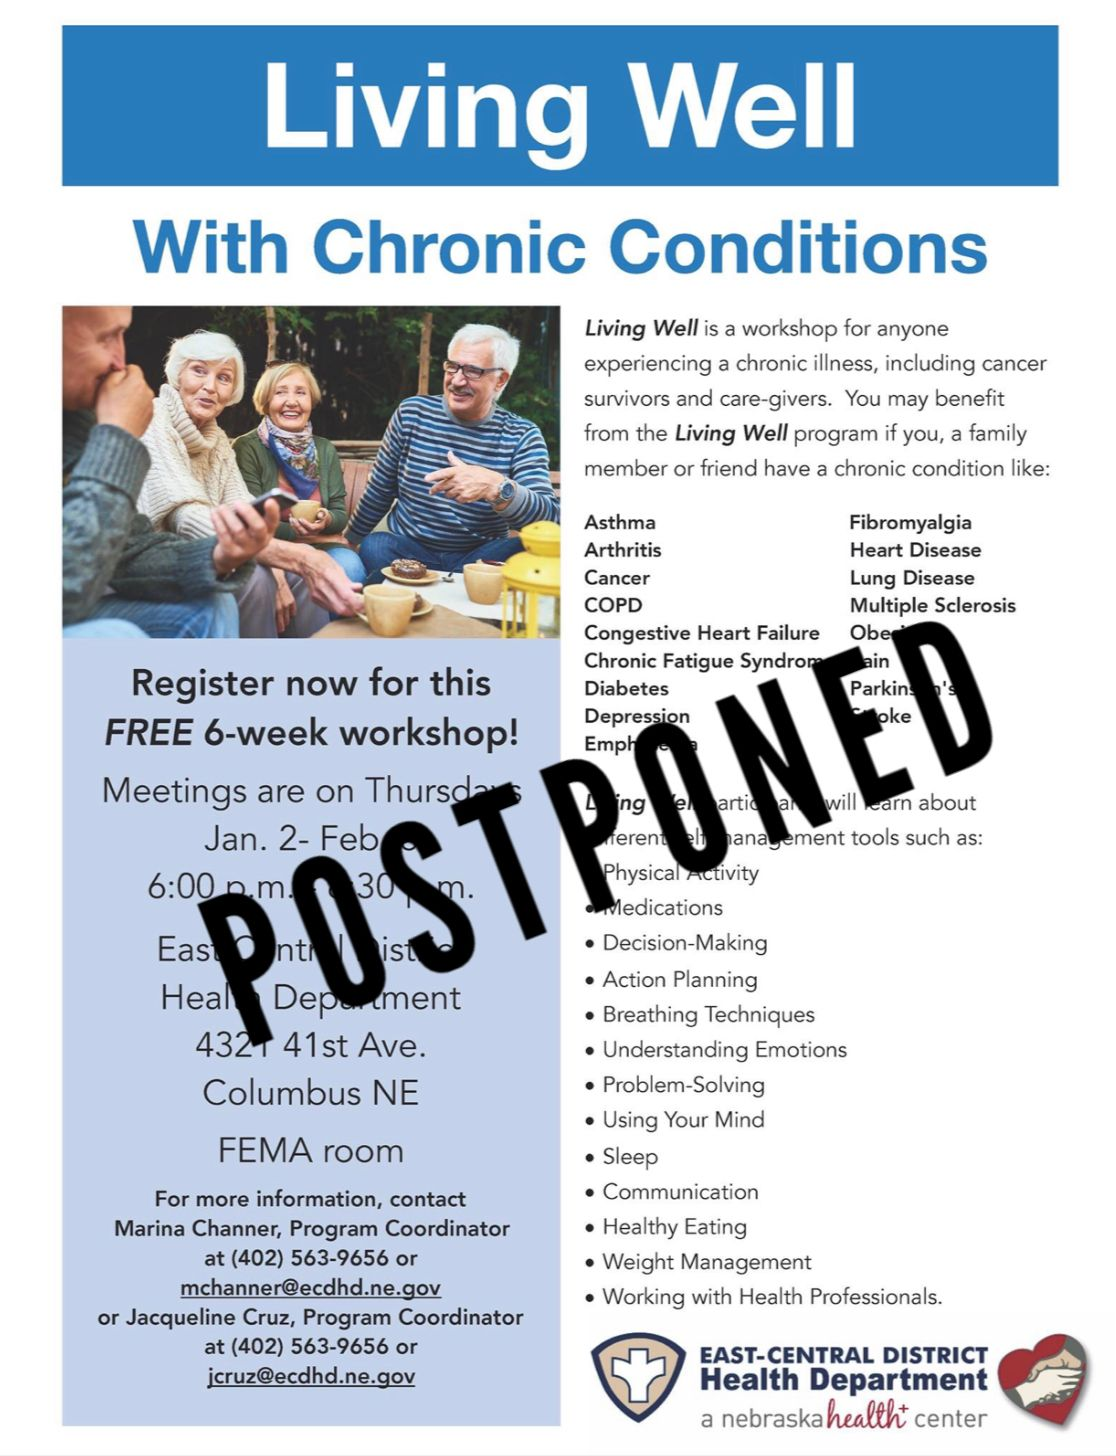 Living Well with Chronic Conditions